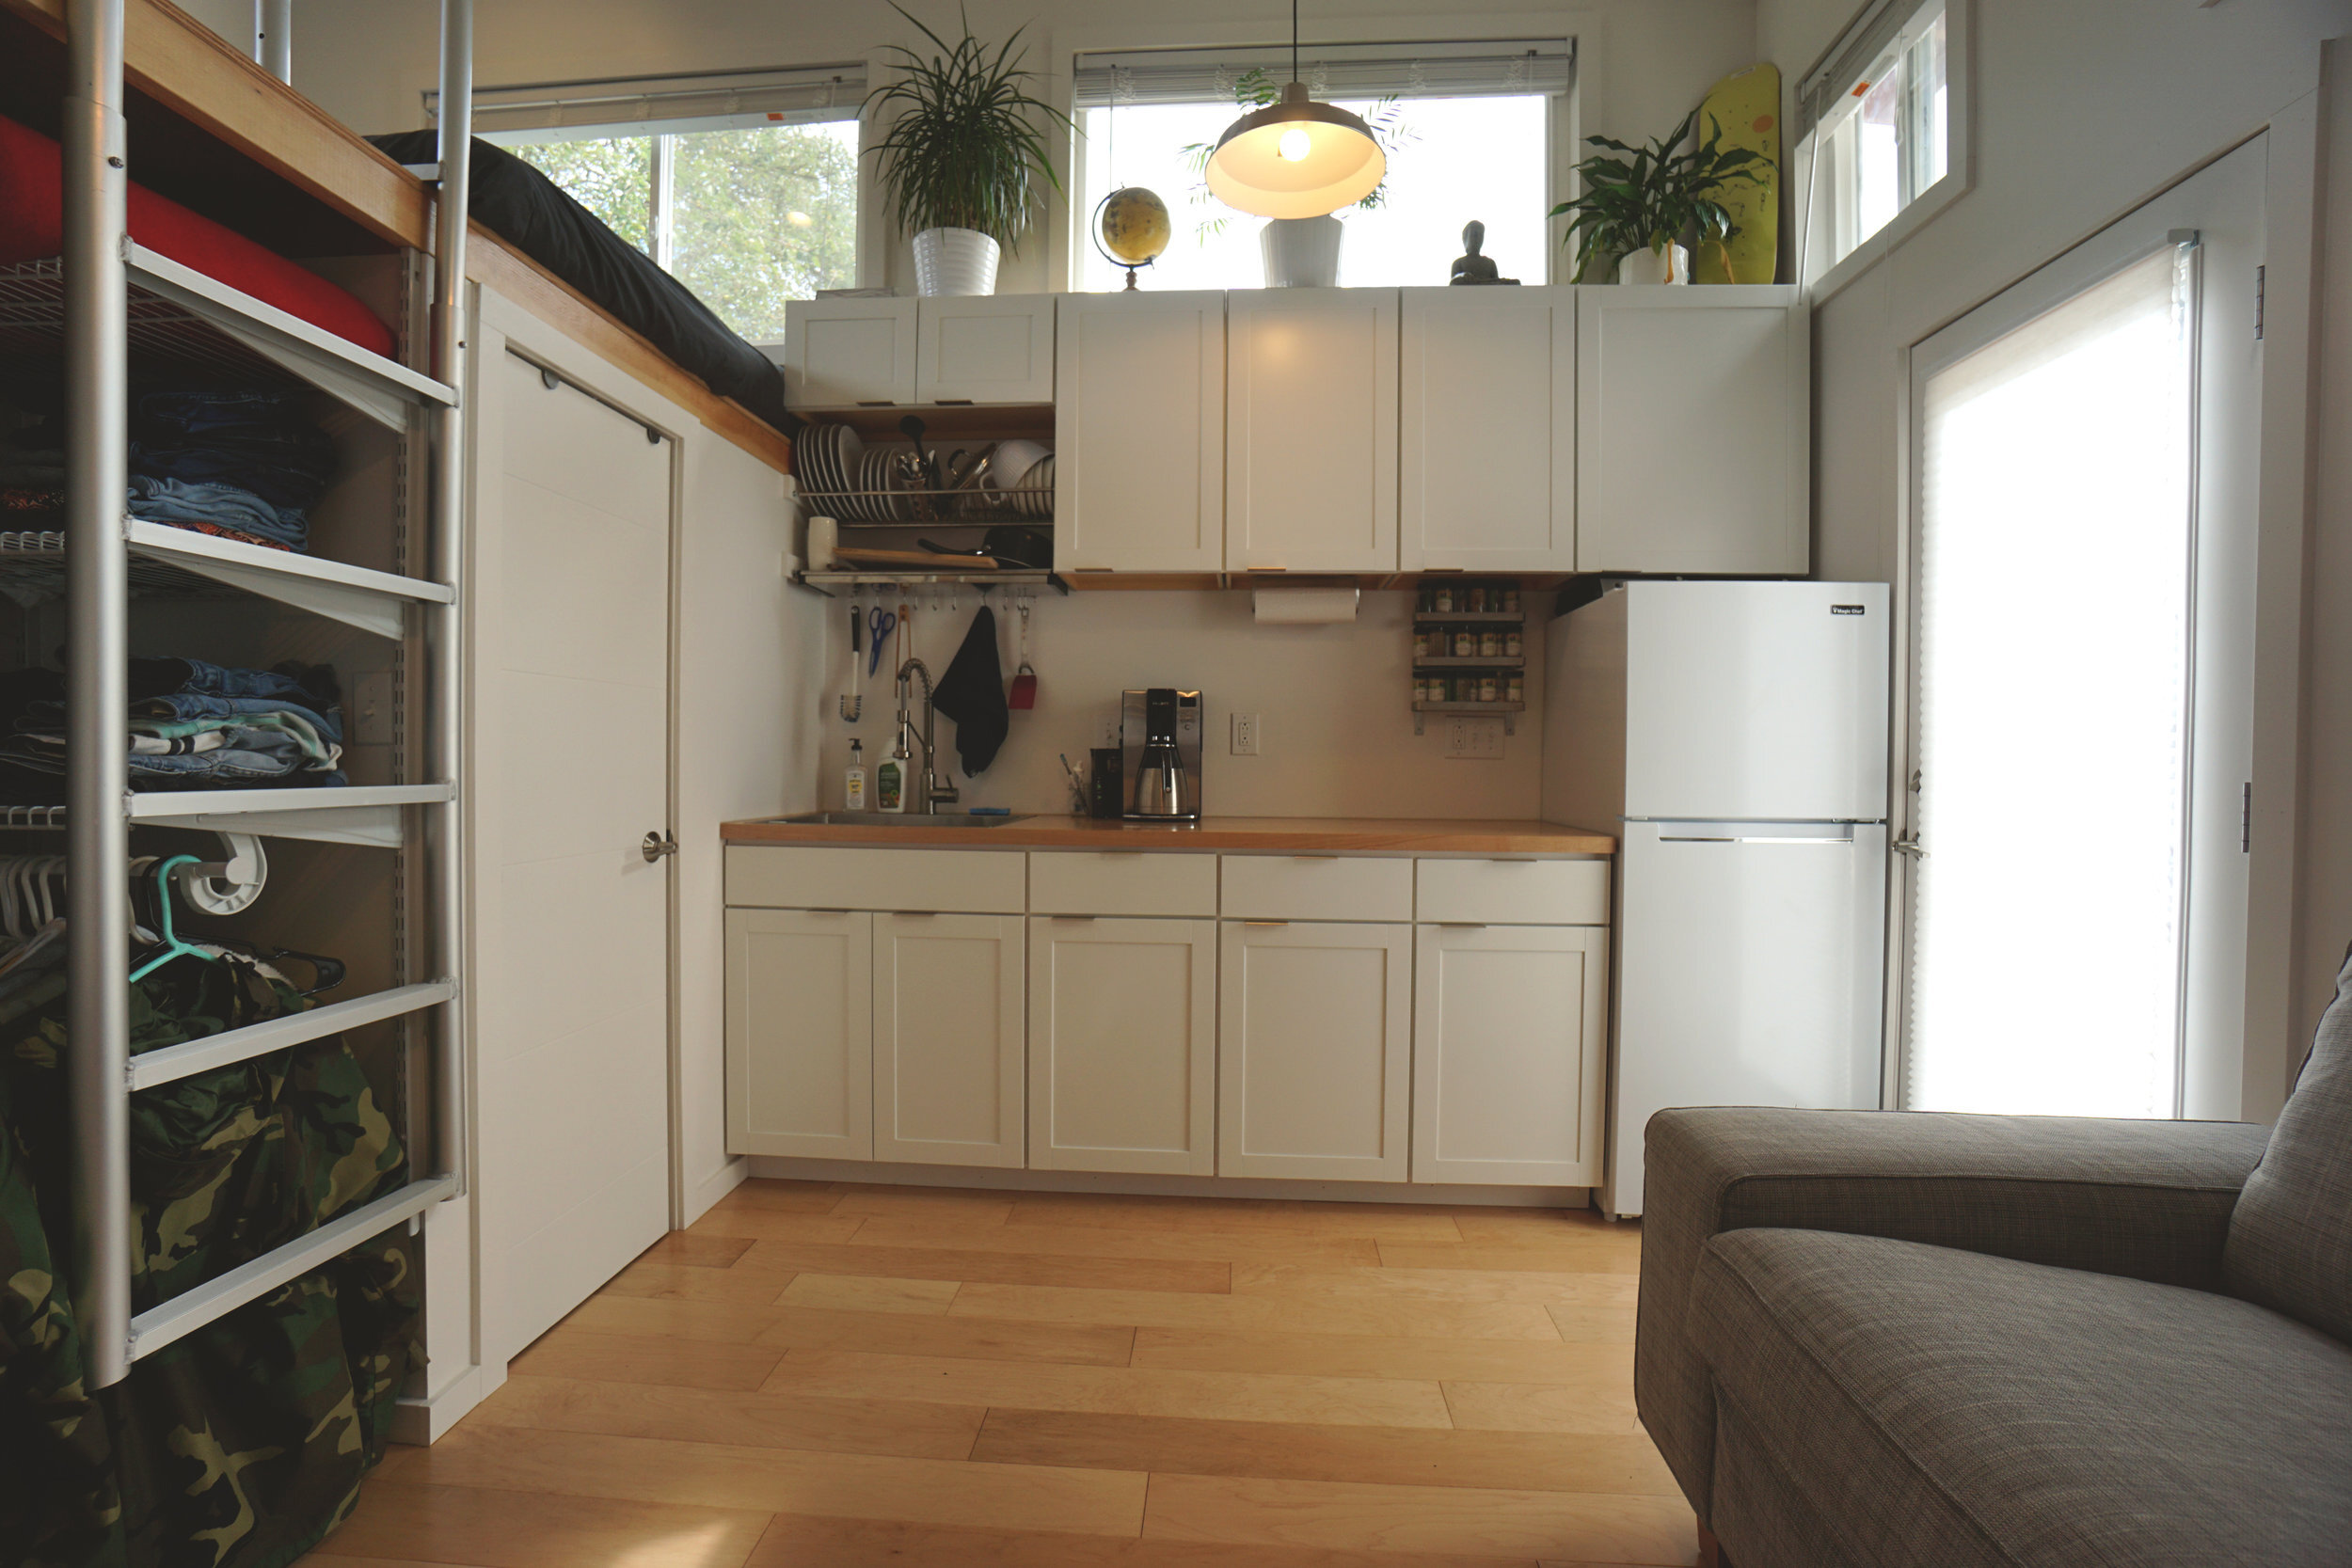 Tiny house project wired by The Tacoma Electrician